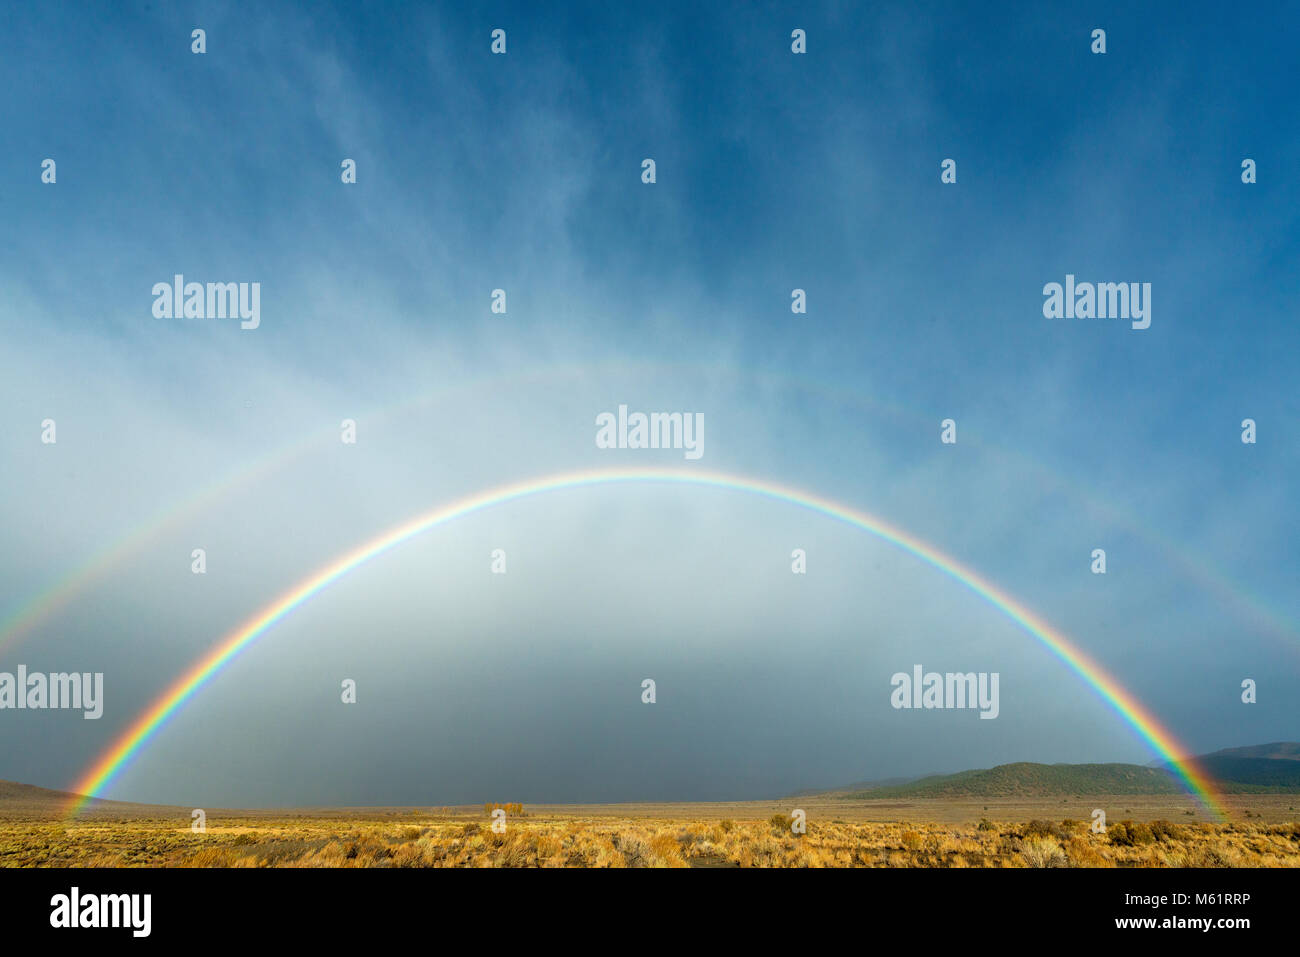 Double Rainbow, Eastern Sierra, Mono Basin National Forest Scenic Area, Inyo National Forest, California - Stock Image